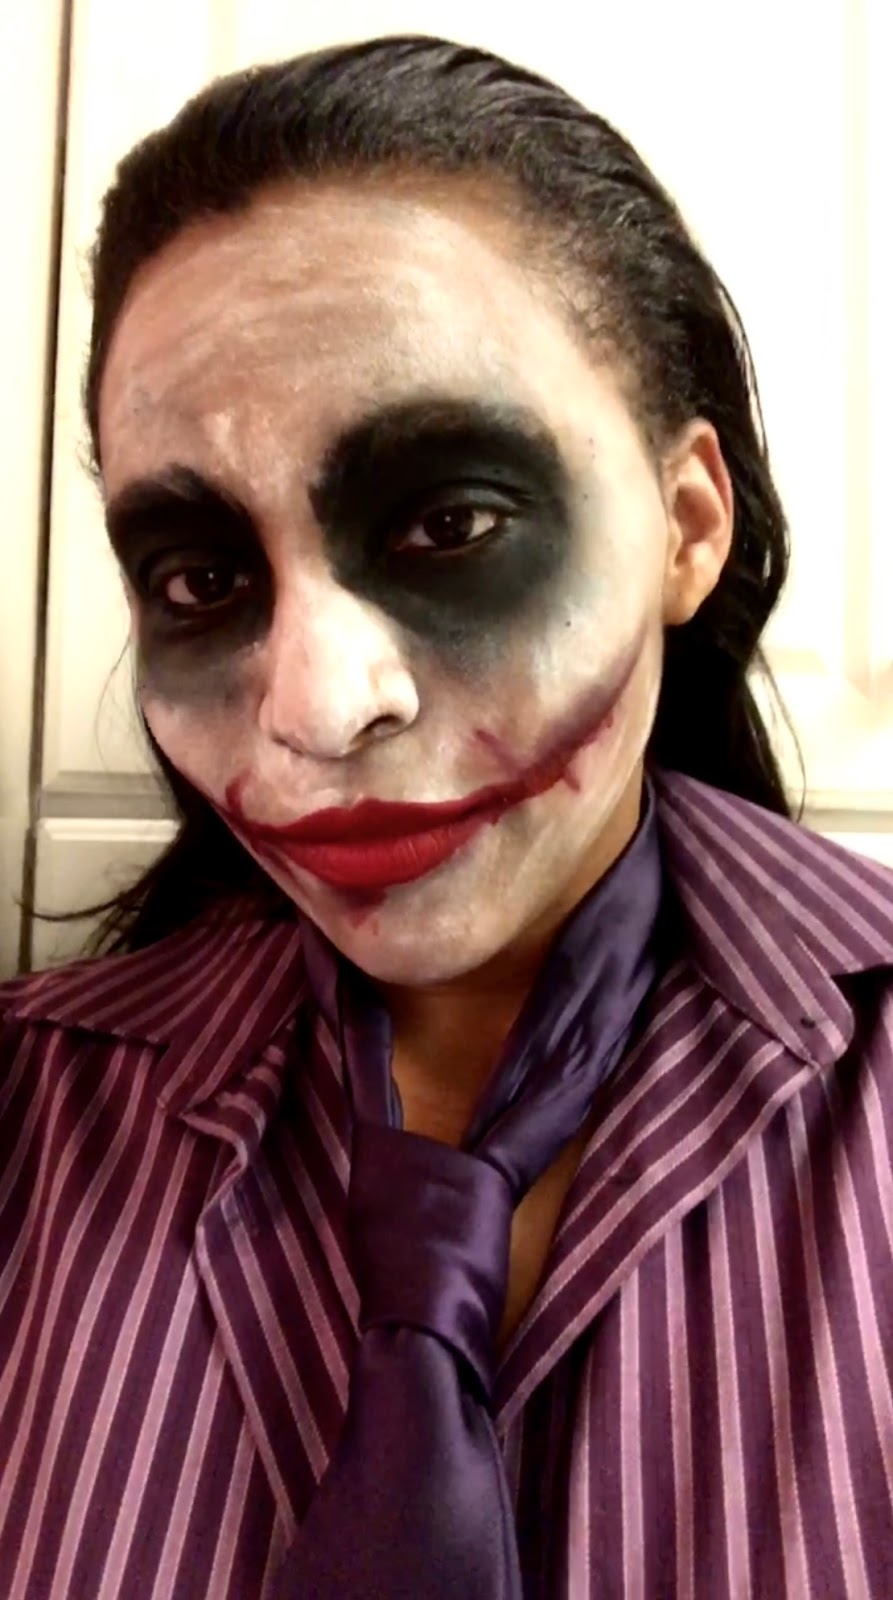 Joker makeup, halloween makeup, batman and the joker, halloween, costume ideas